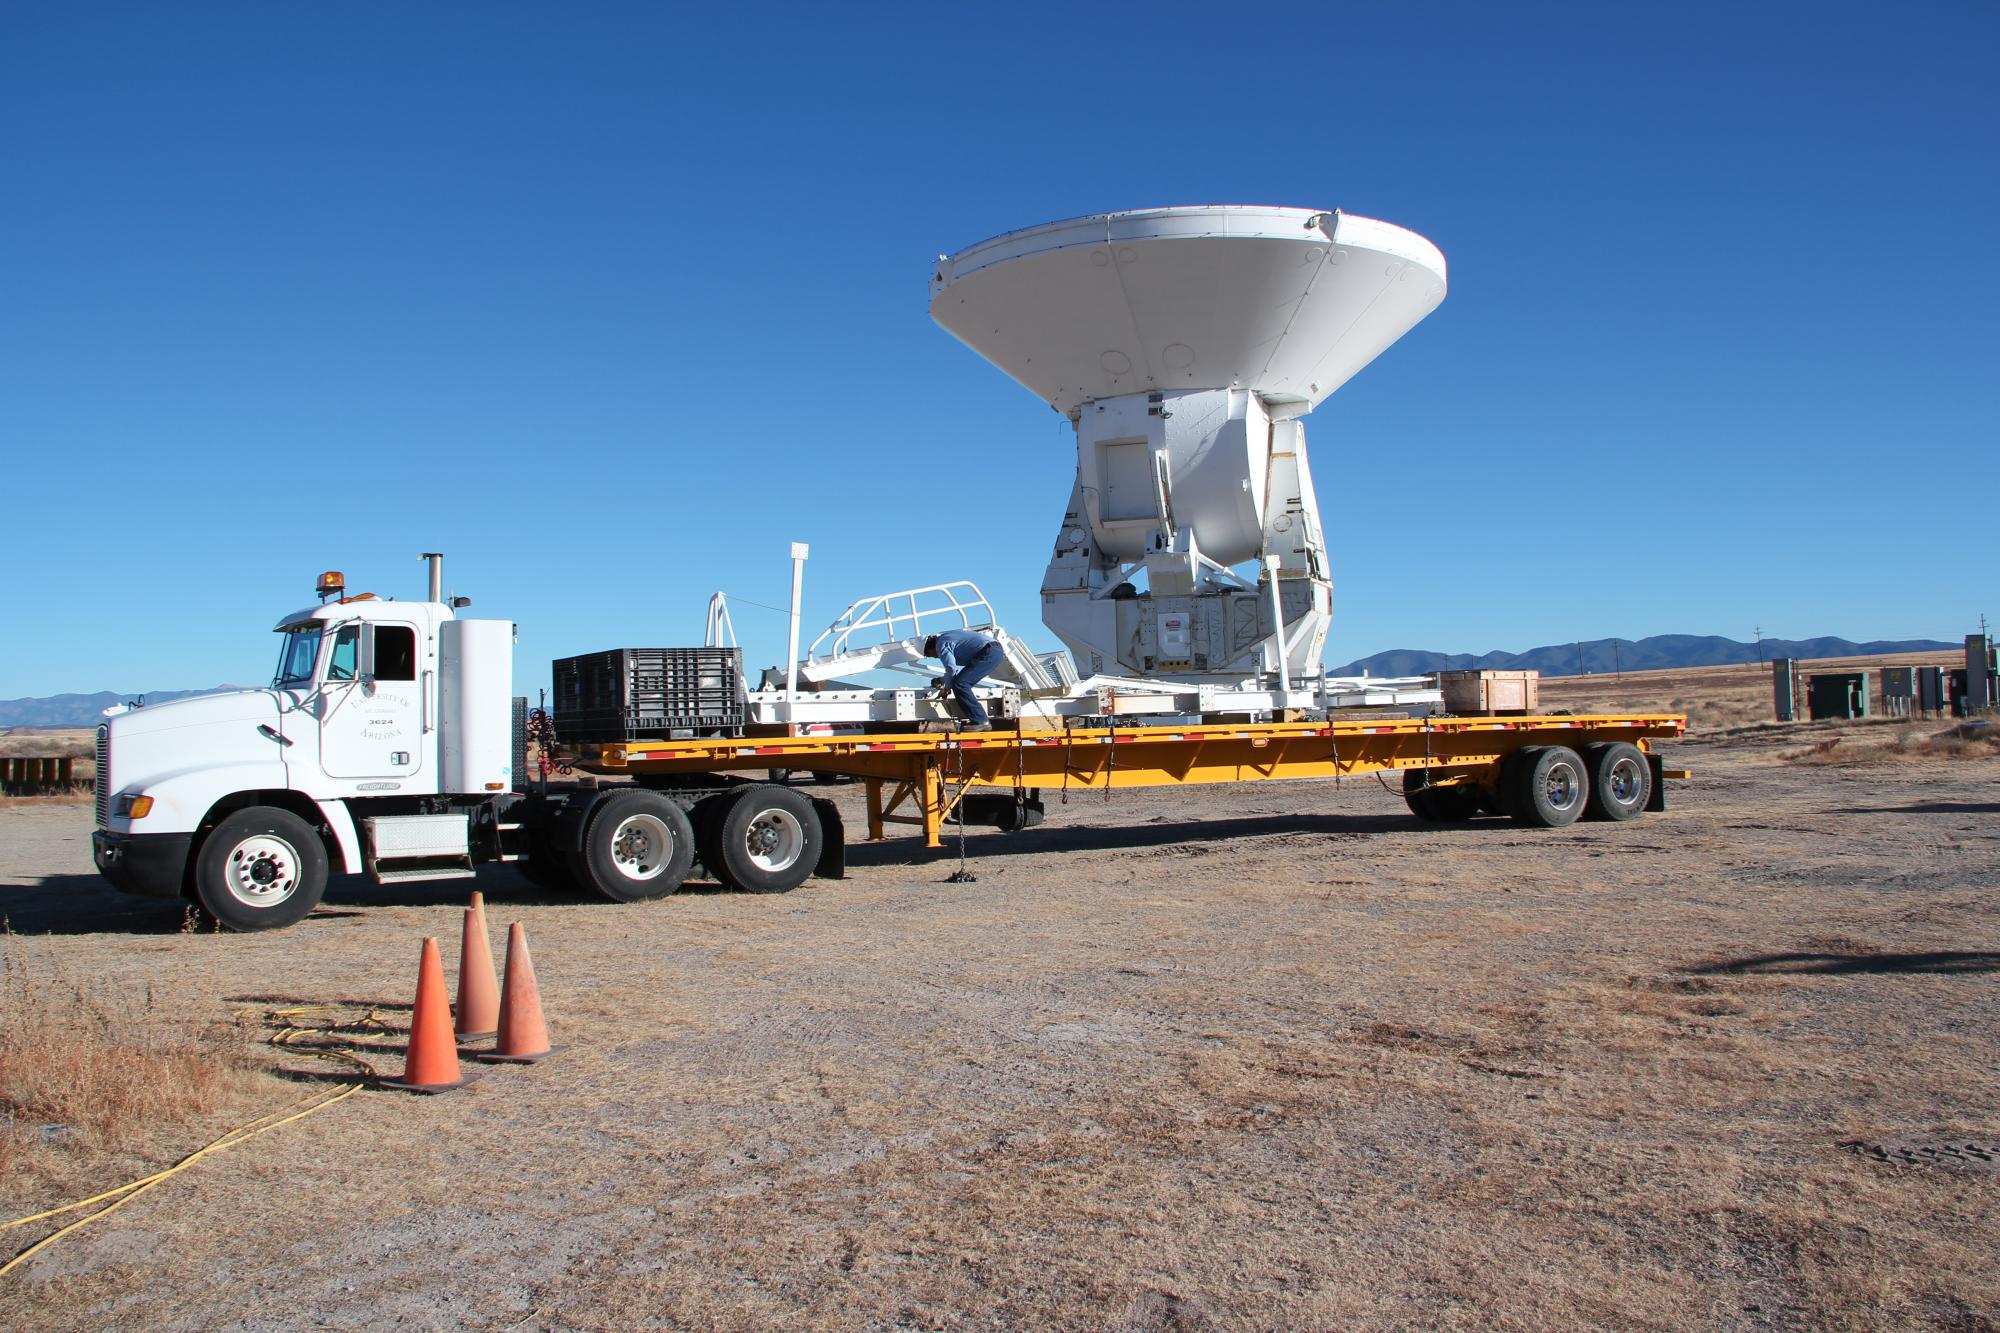 The new radio telescope, ready to be shipped from the Very Large Array in New Mexico to its new home on Kitt Peak in southern Arizona.